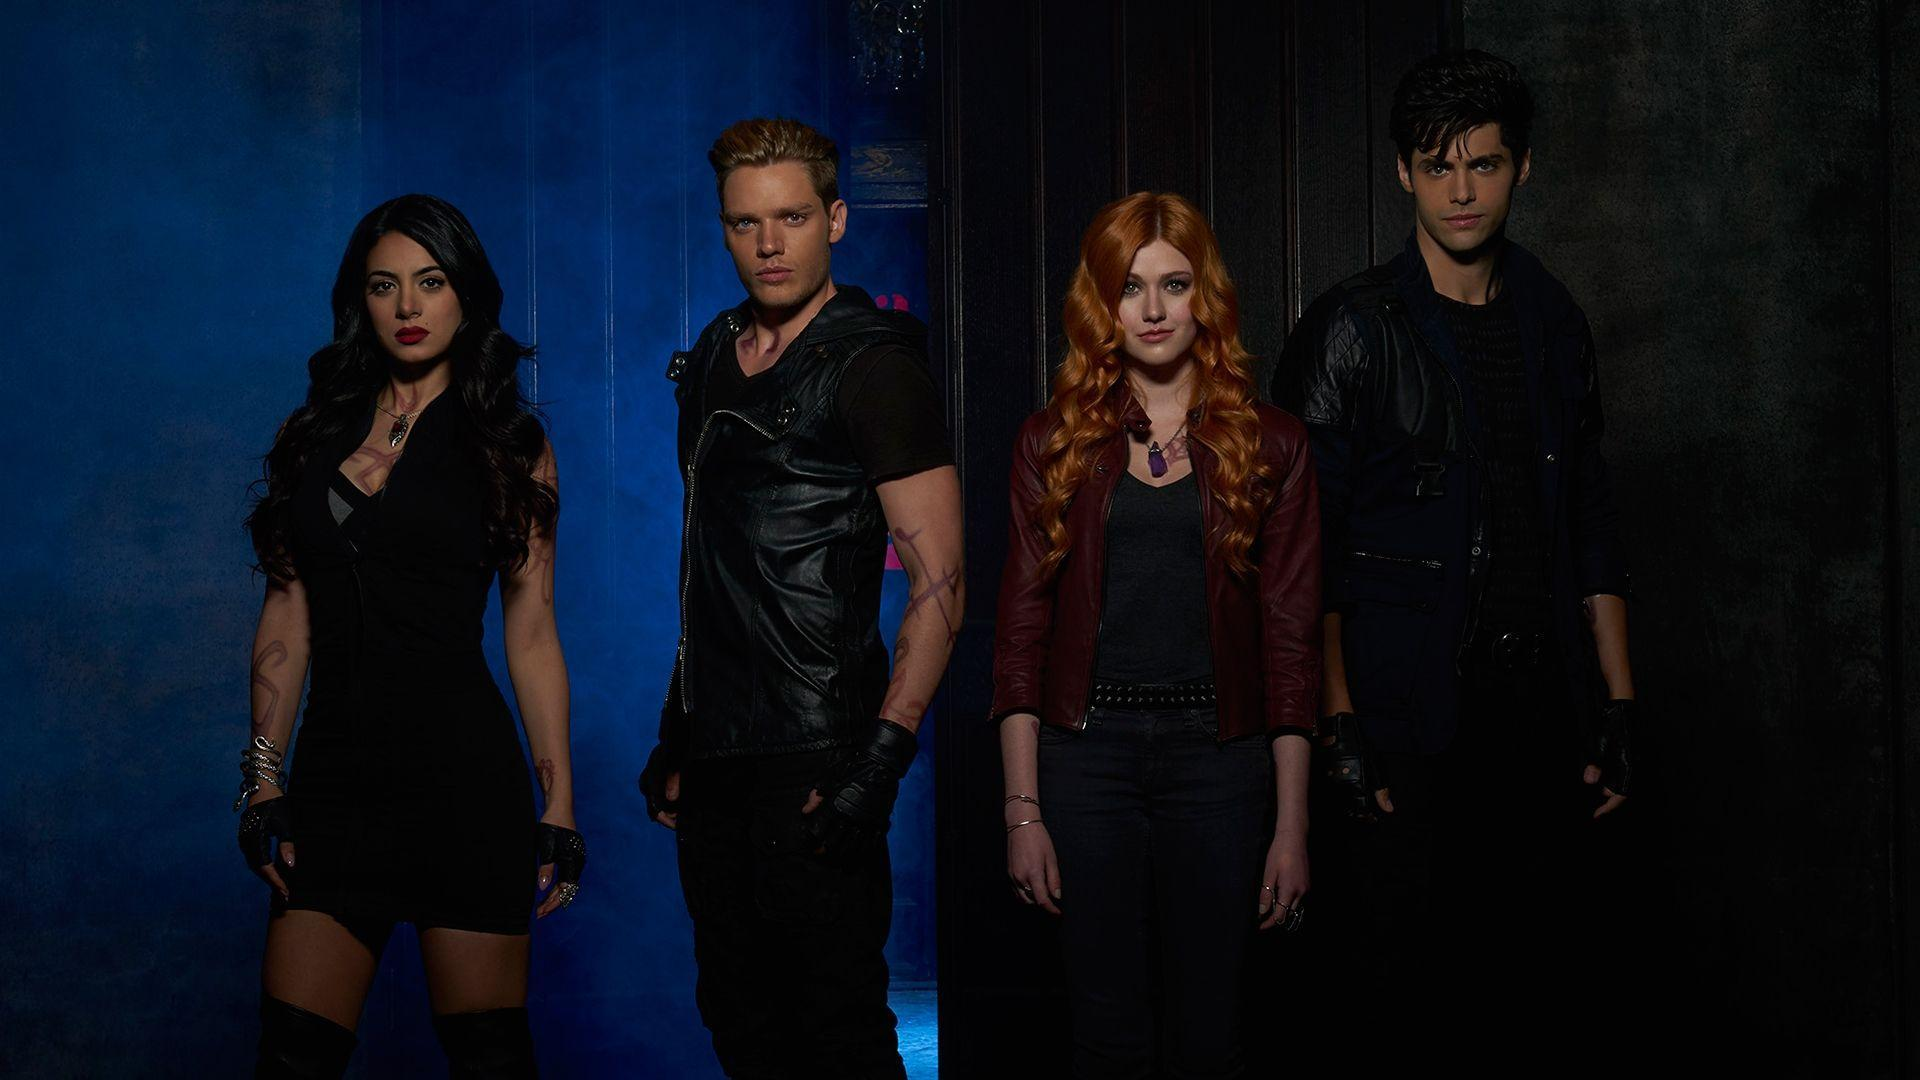 Shadowhunters - Shadowhunters Wallpaper (1920x1080) (252325)